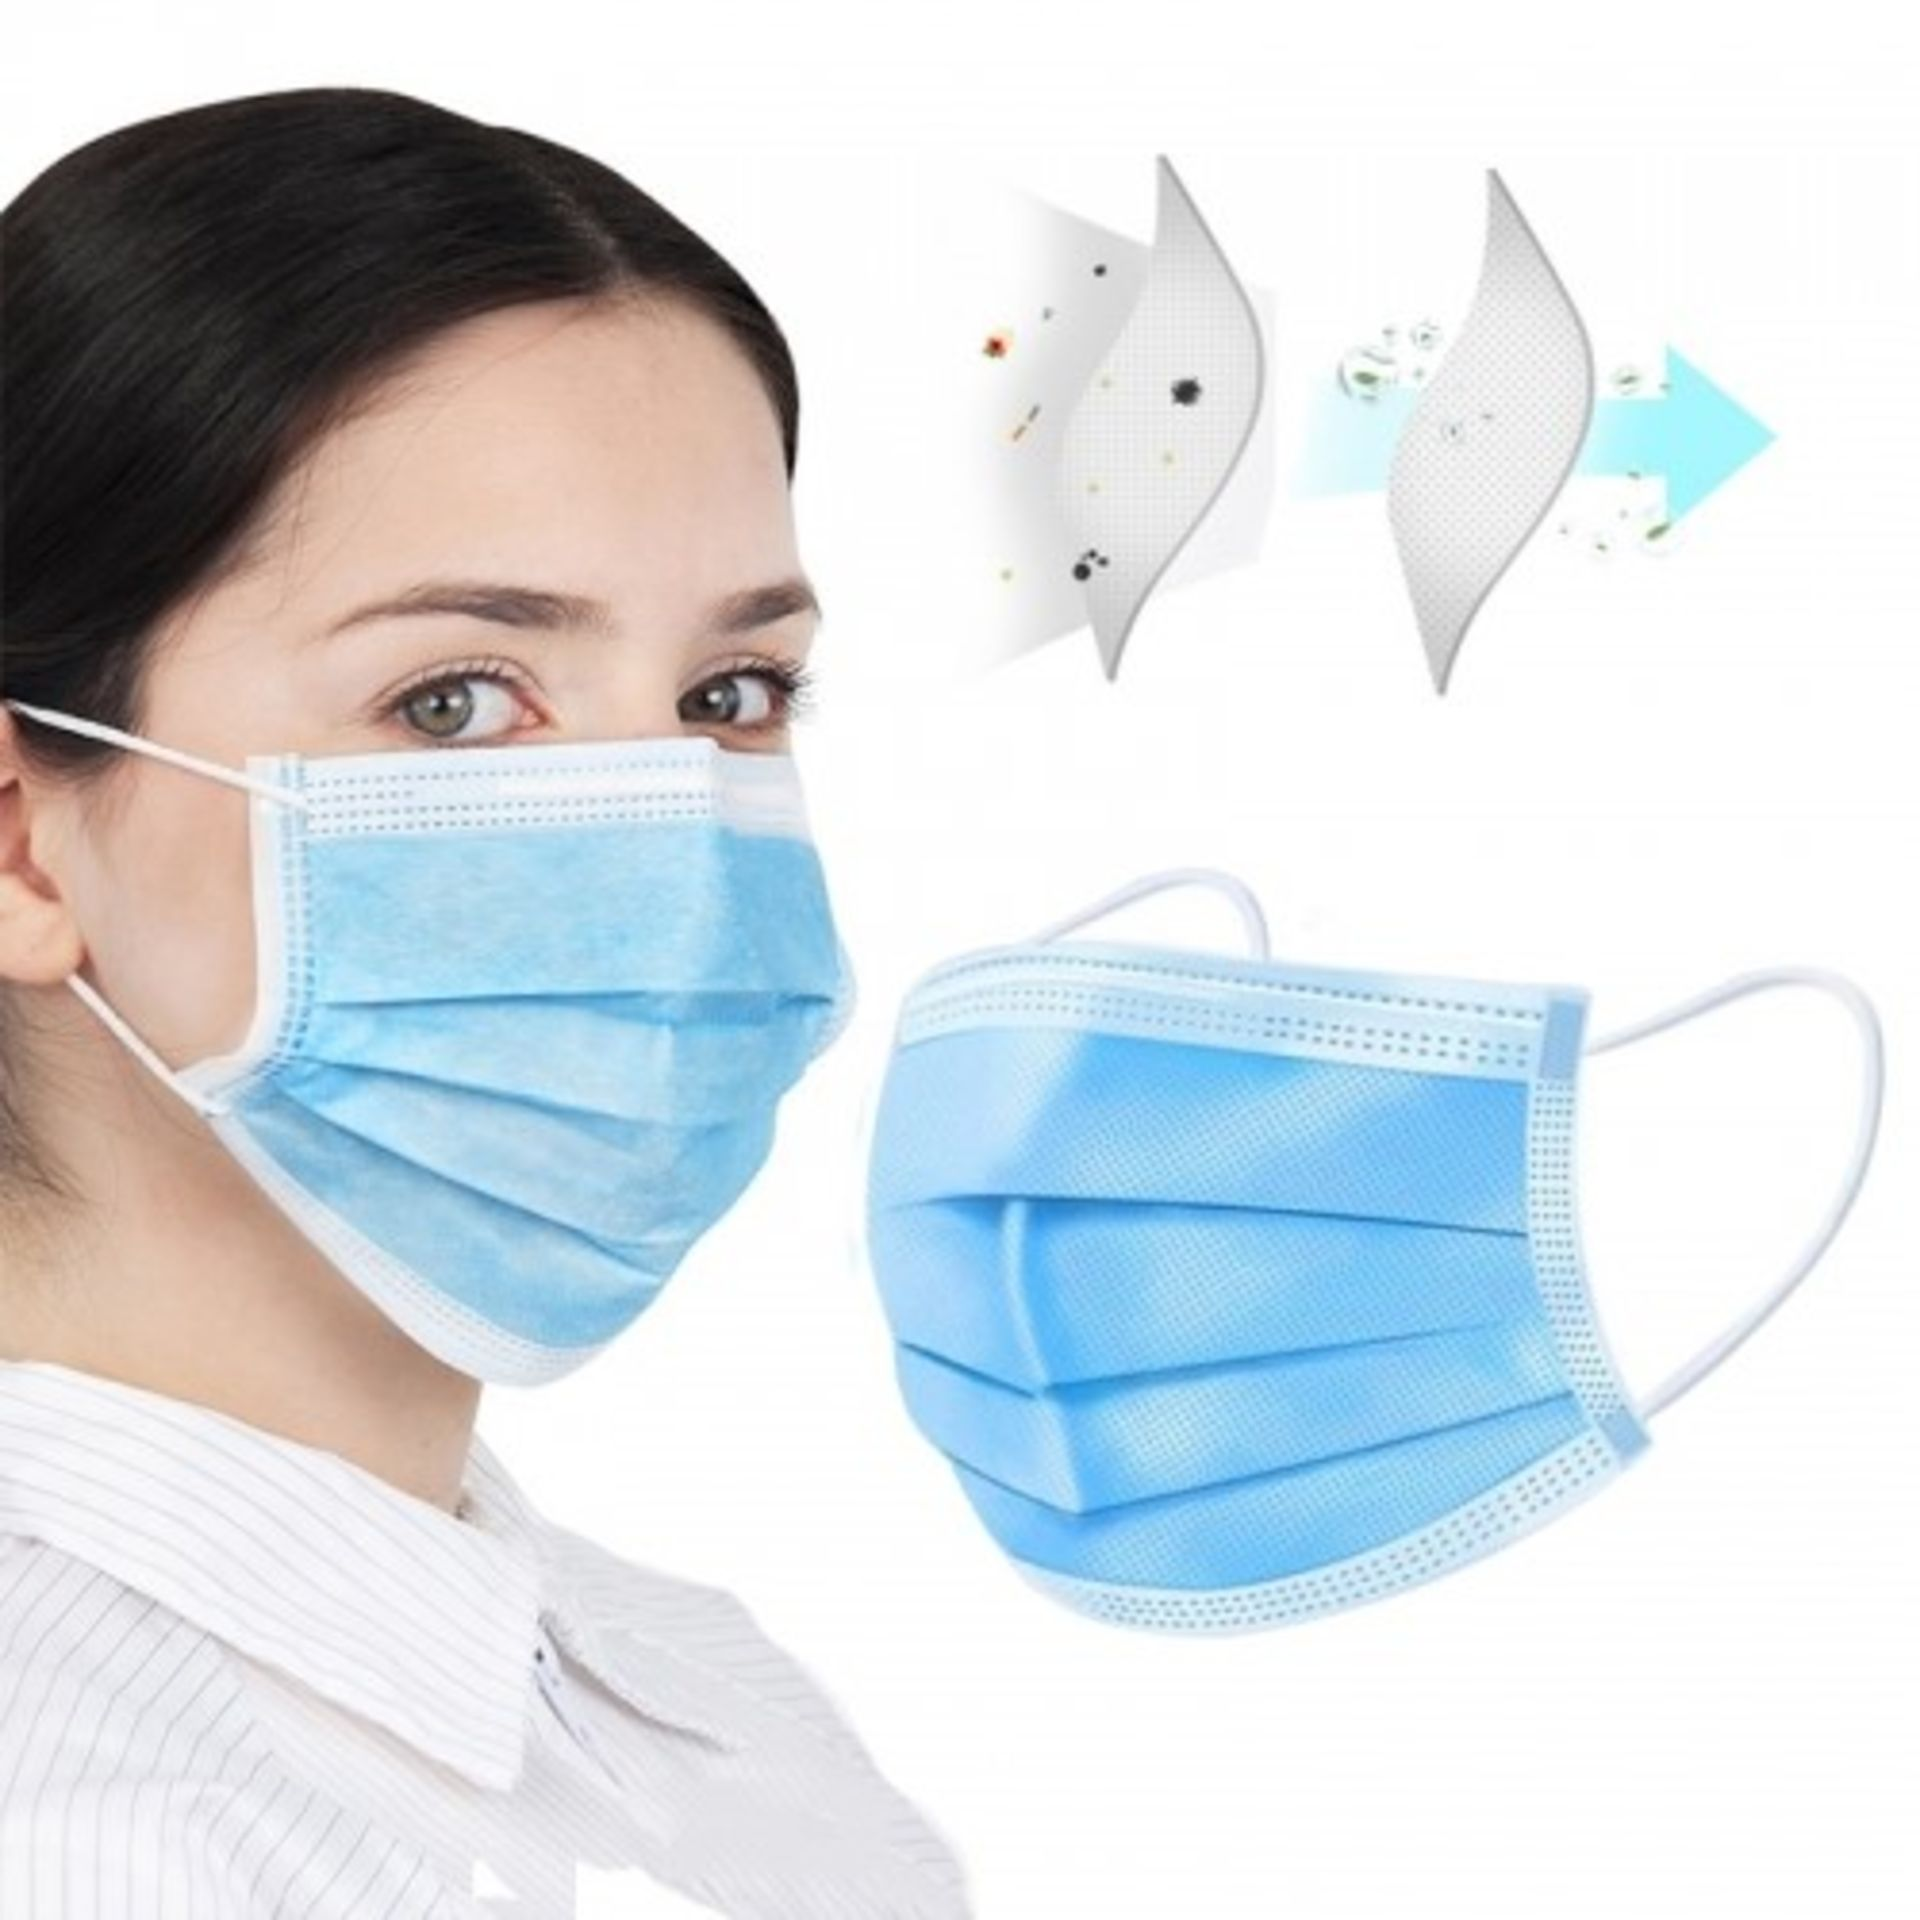 100 IN TOTAL 3 X PLY DISPOSABLE FACE MASKS *NO VAT* - Image 3 of 3